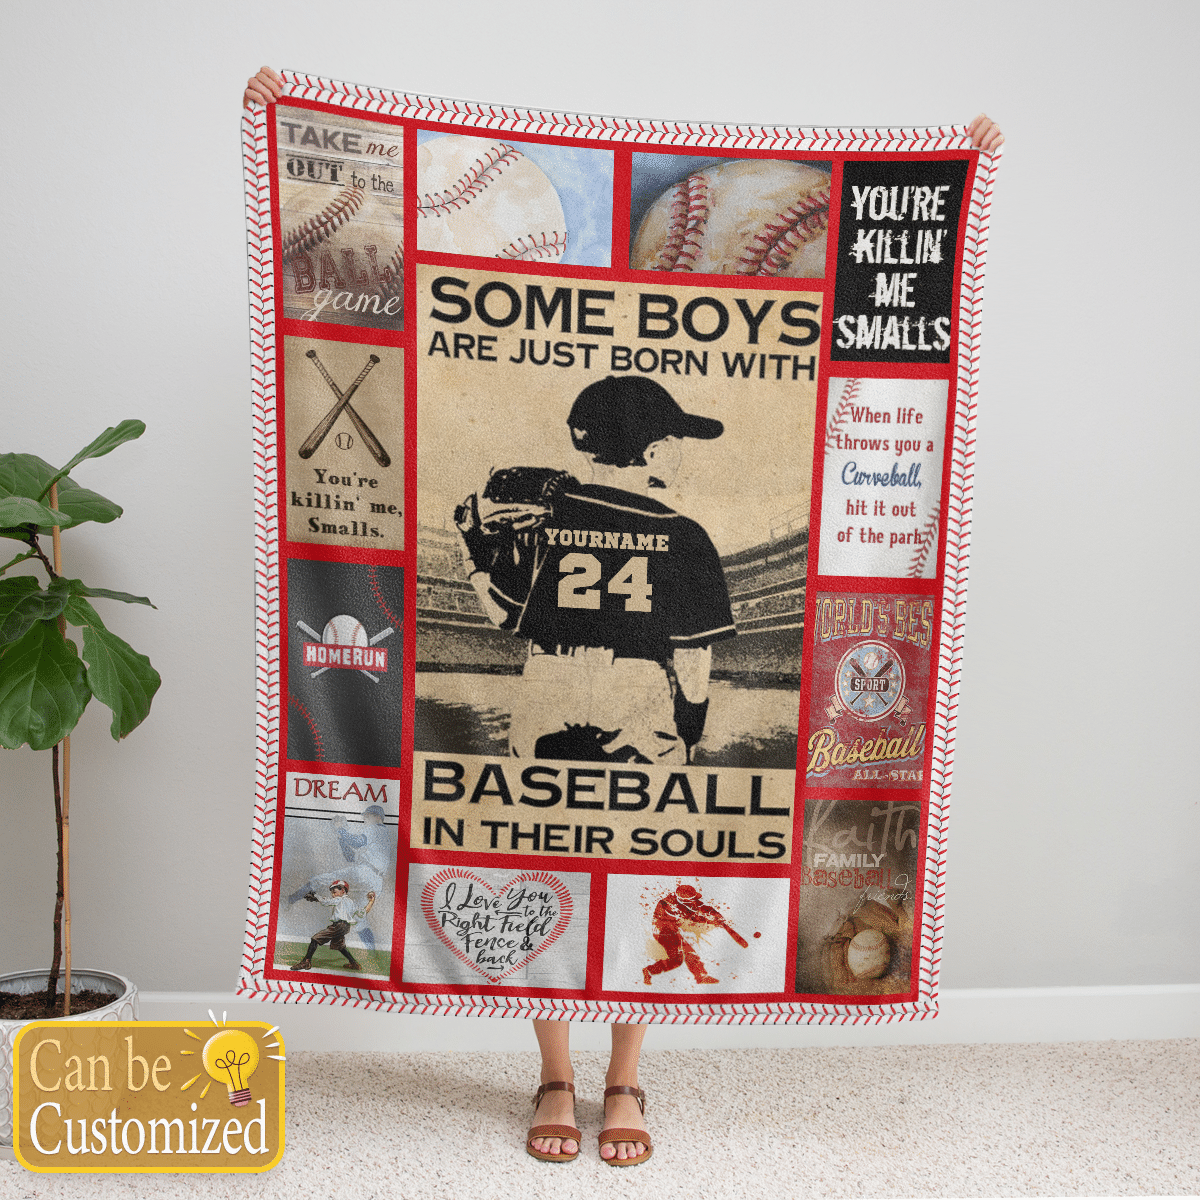 Some boys are just born with baseball in their souls Fleece blanket